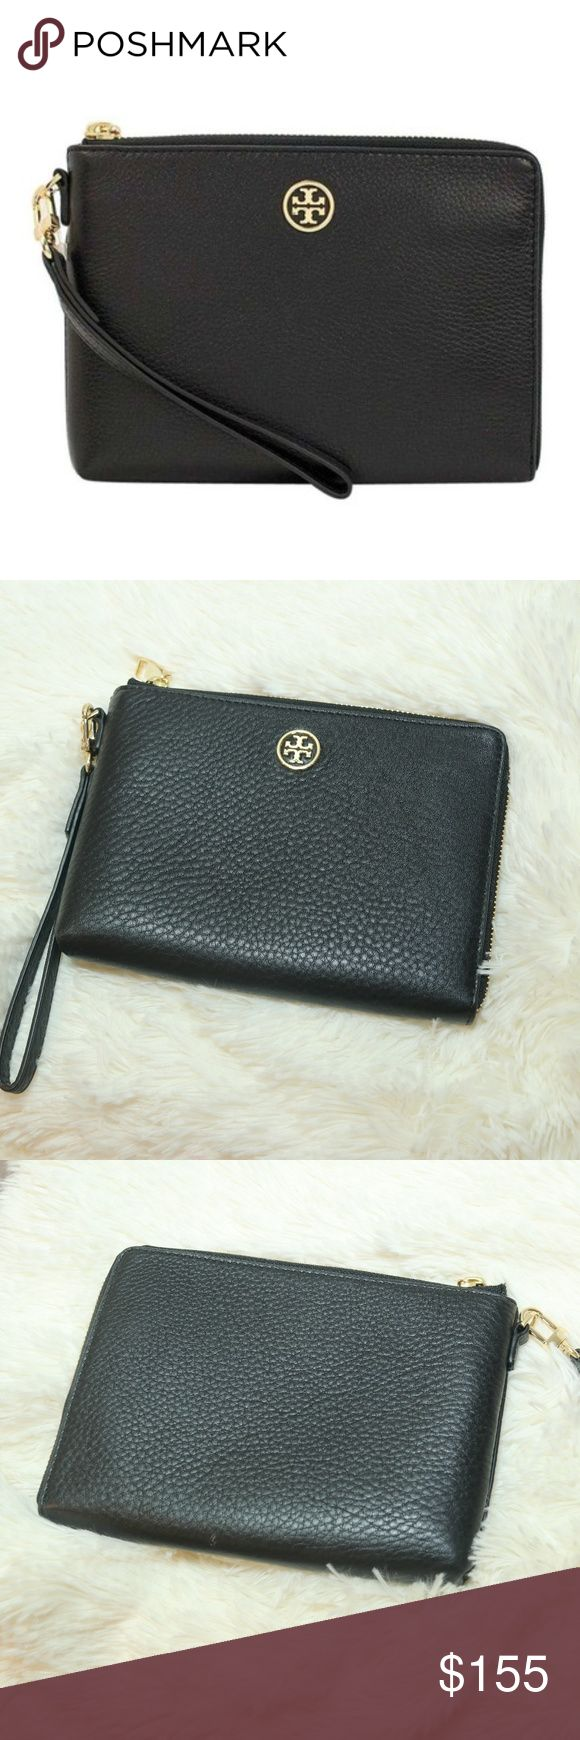 Tory Burch Black Leather Landon Wristlet Tory Burch Black Leather Landon Wristlet Pebbled leather wristlet with T Gold toned hardware.  Tory Burch logo on front, Zip pocket on back,  Interior lined with TB logo fabric and has 1 zip pocket, 1 full-length slip pocket, and 1 smart phone slot. Tory Burch Bags Clutches & Wristlets